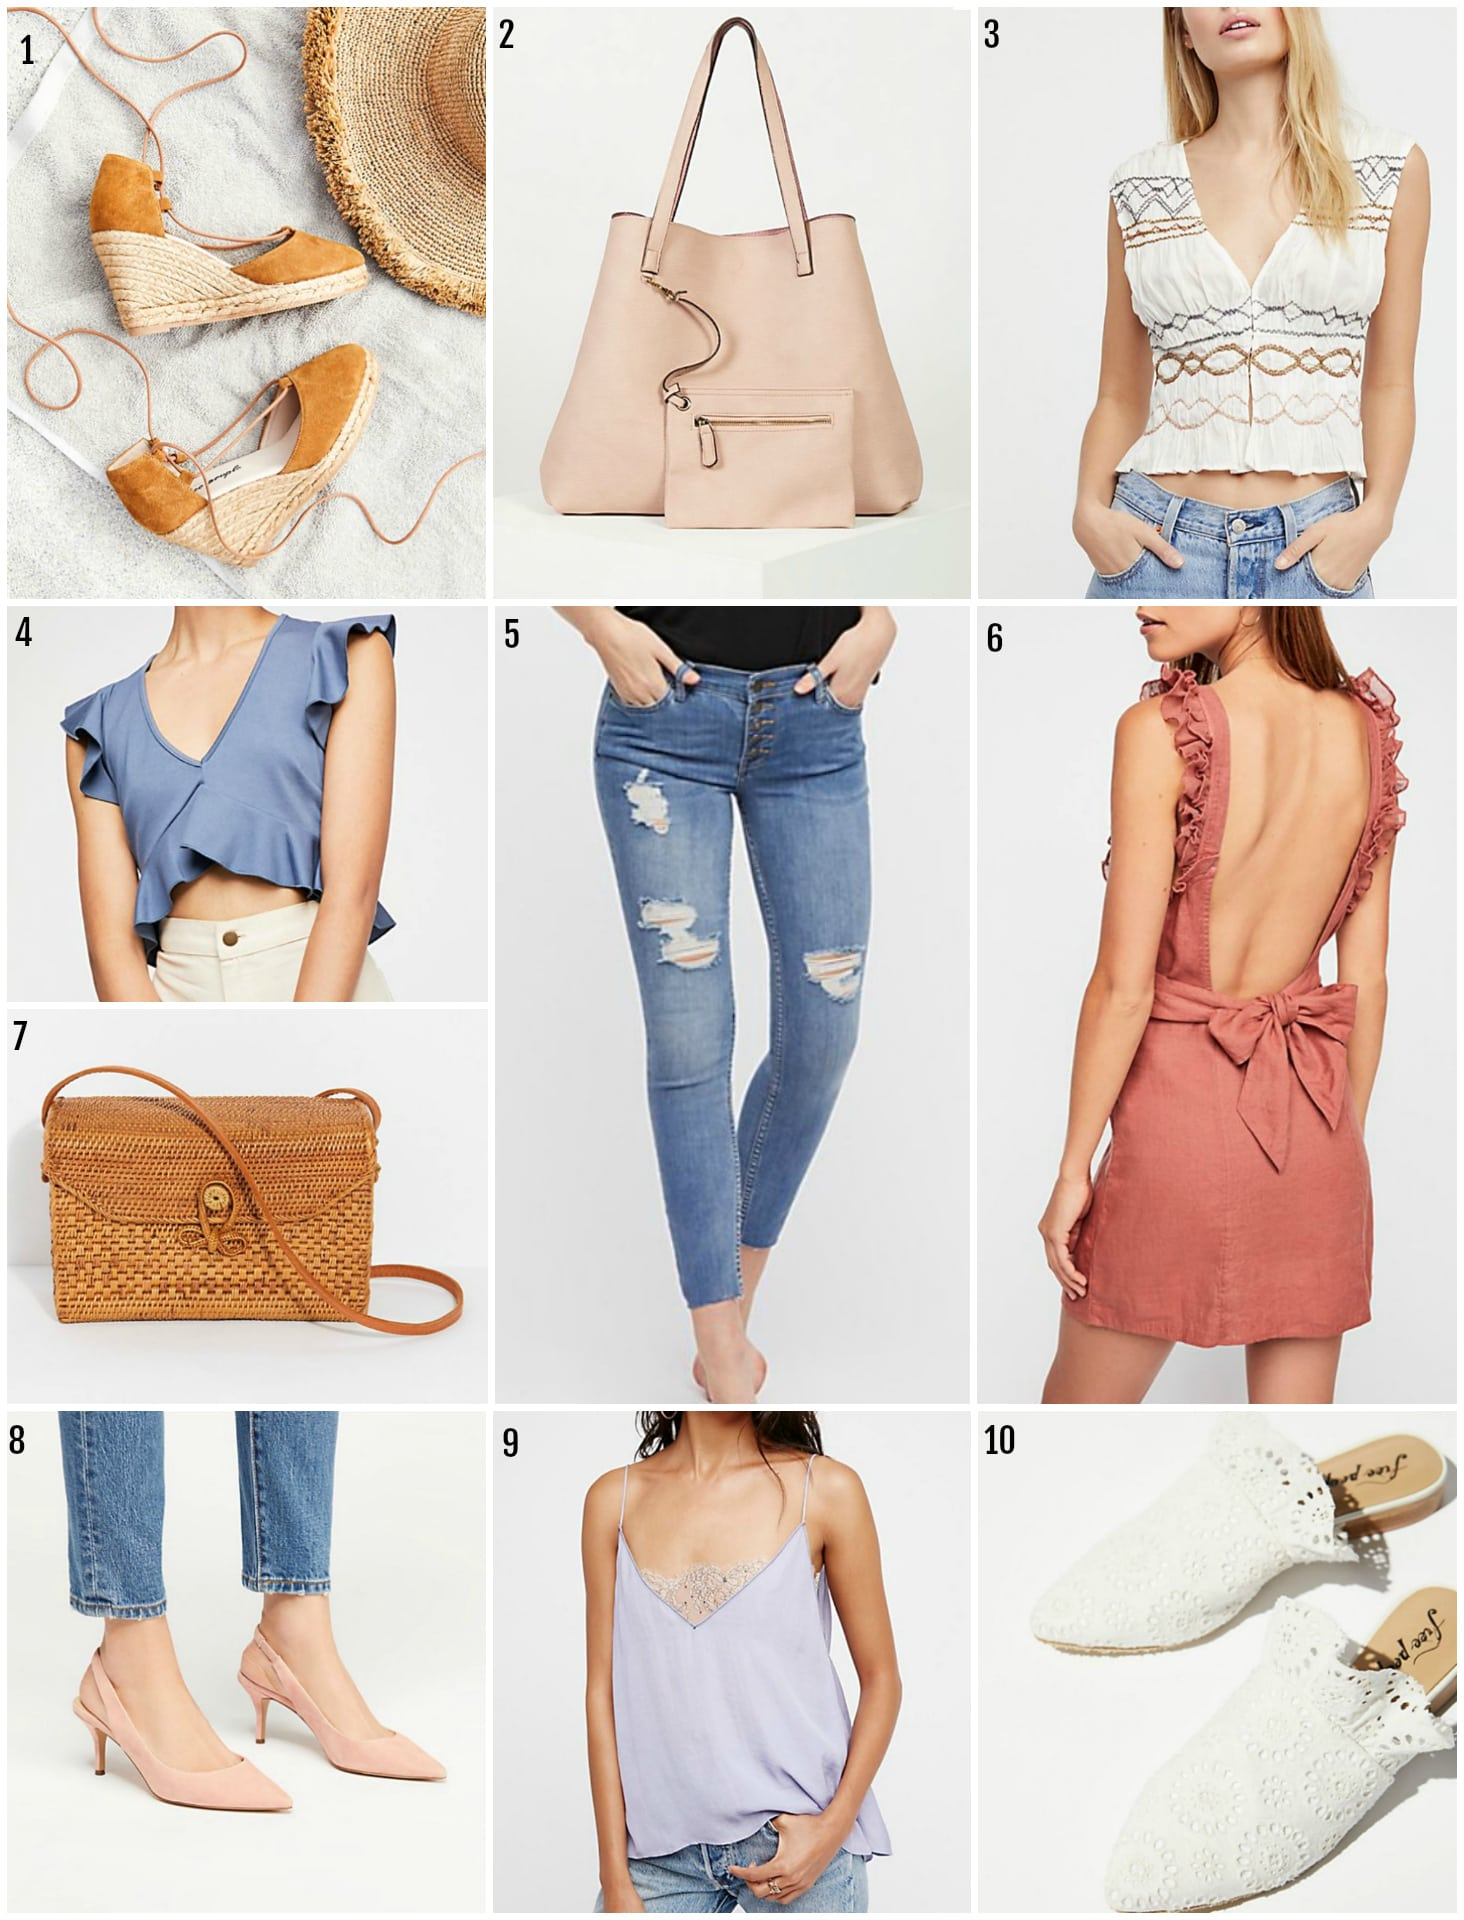 Mash Elle style blogger | spring style | Free People Spring finds | Free People | fashion inspiration | jeans | wedges